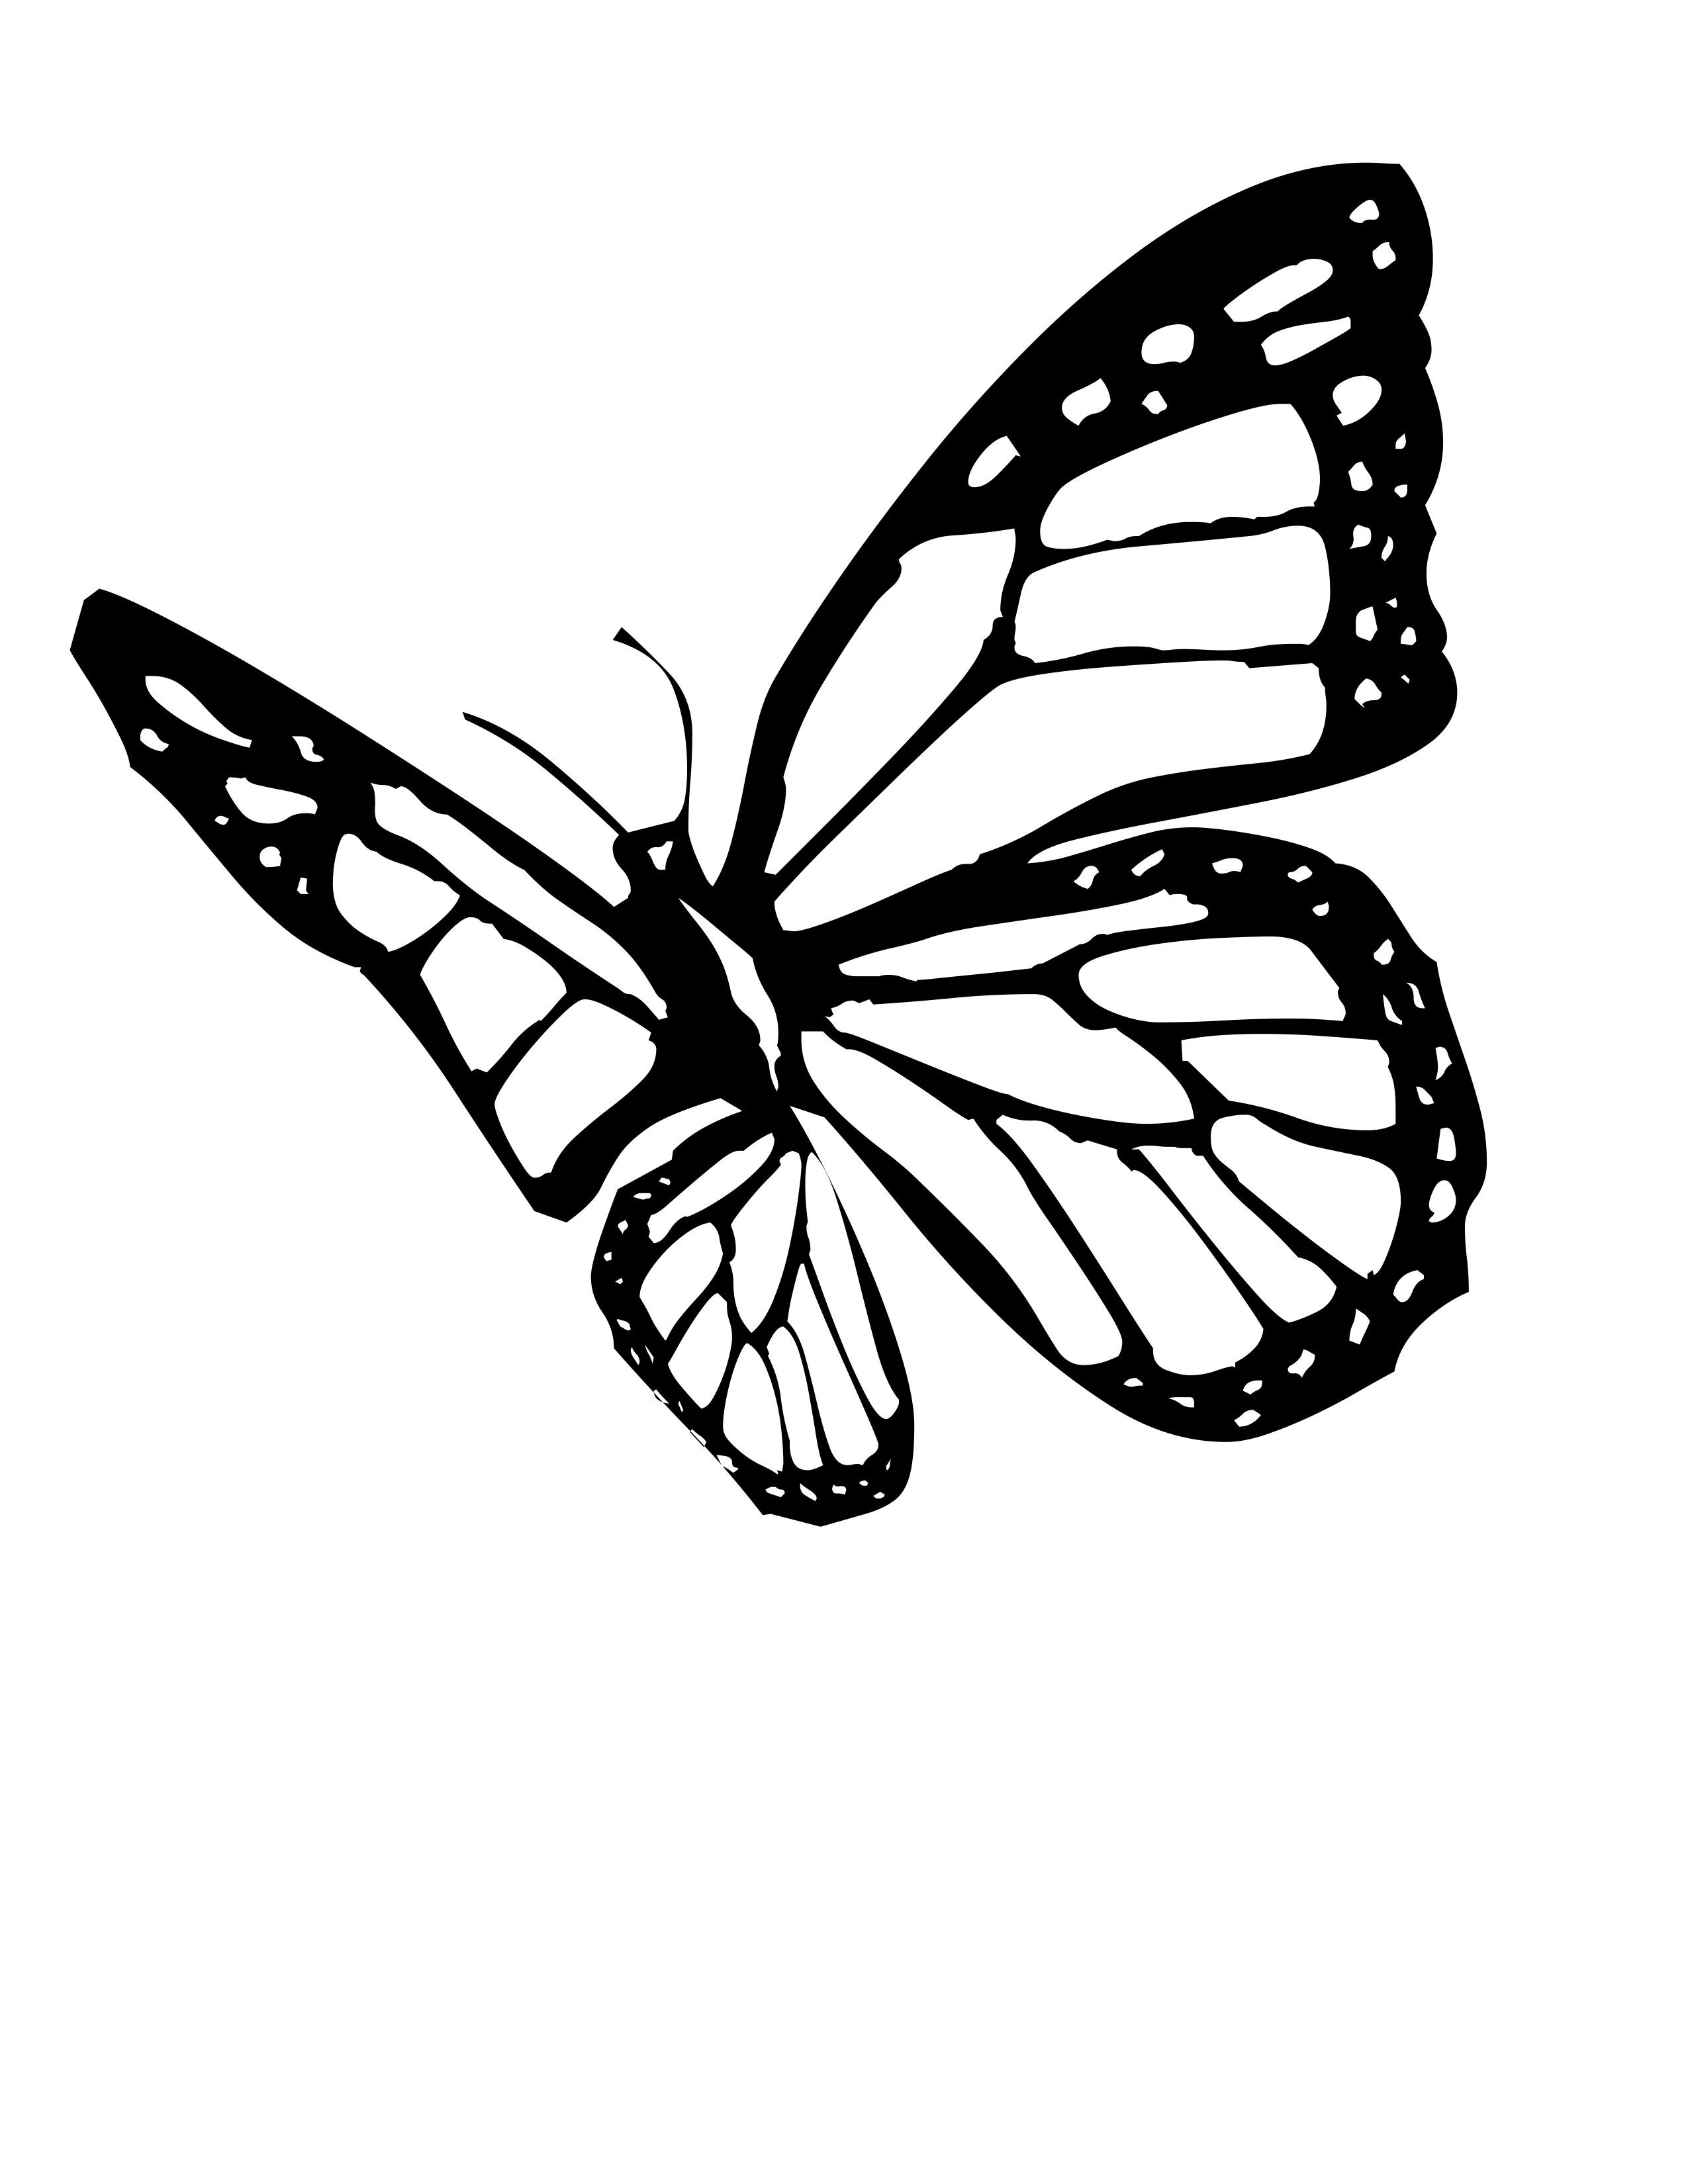 monarch butterfly outline butterfly coloring pages butterfly tattoo stencil outline monarch butterfly